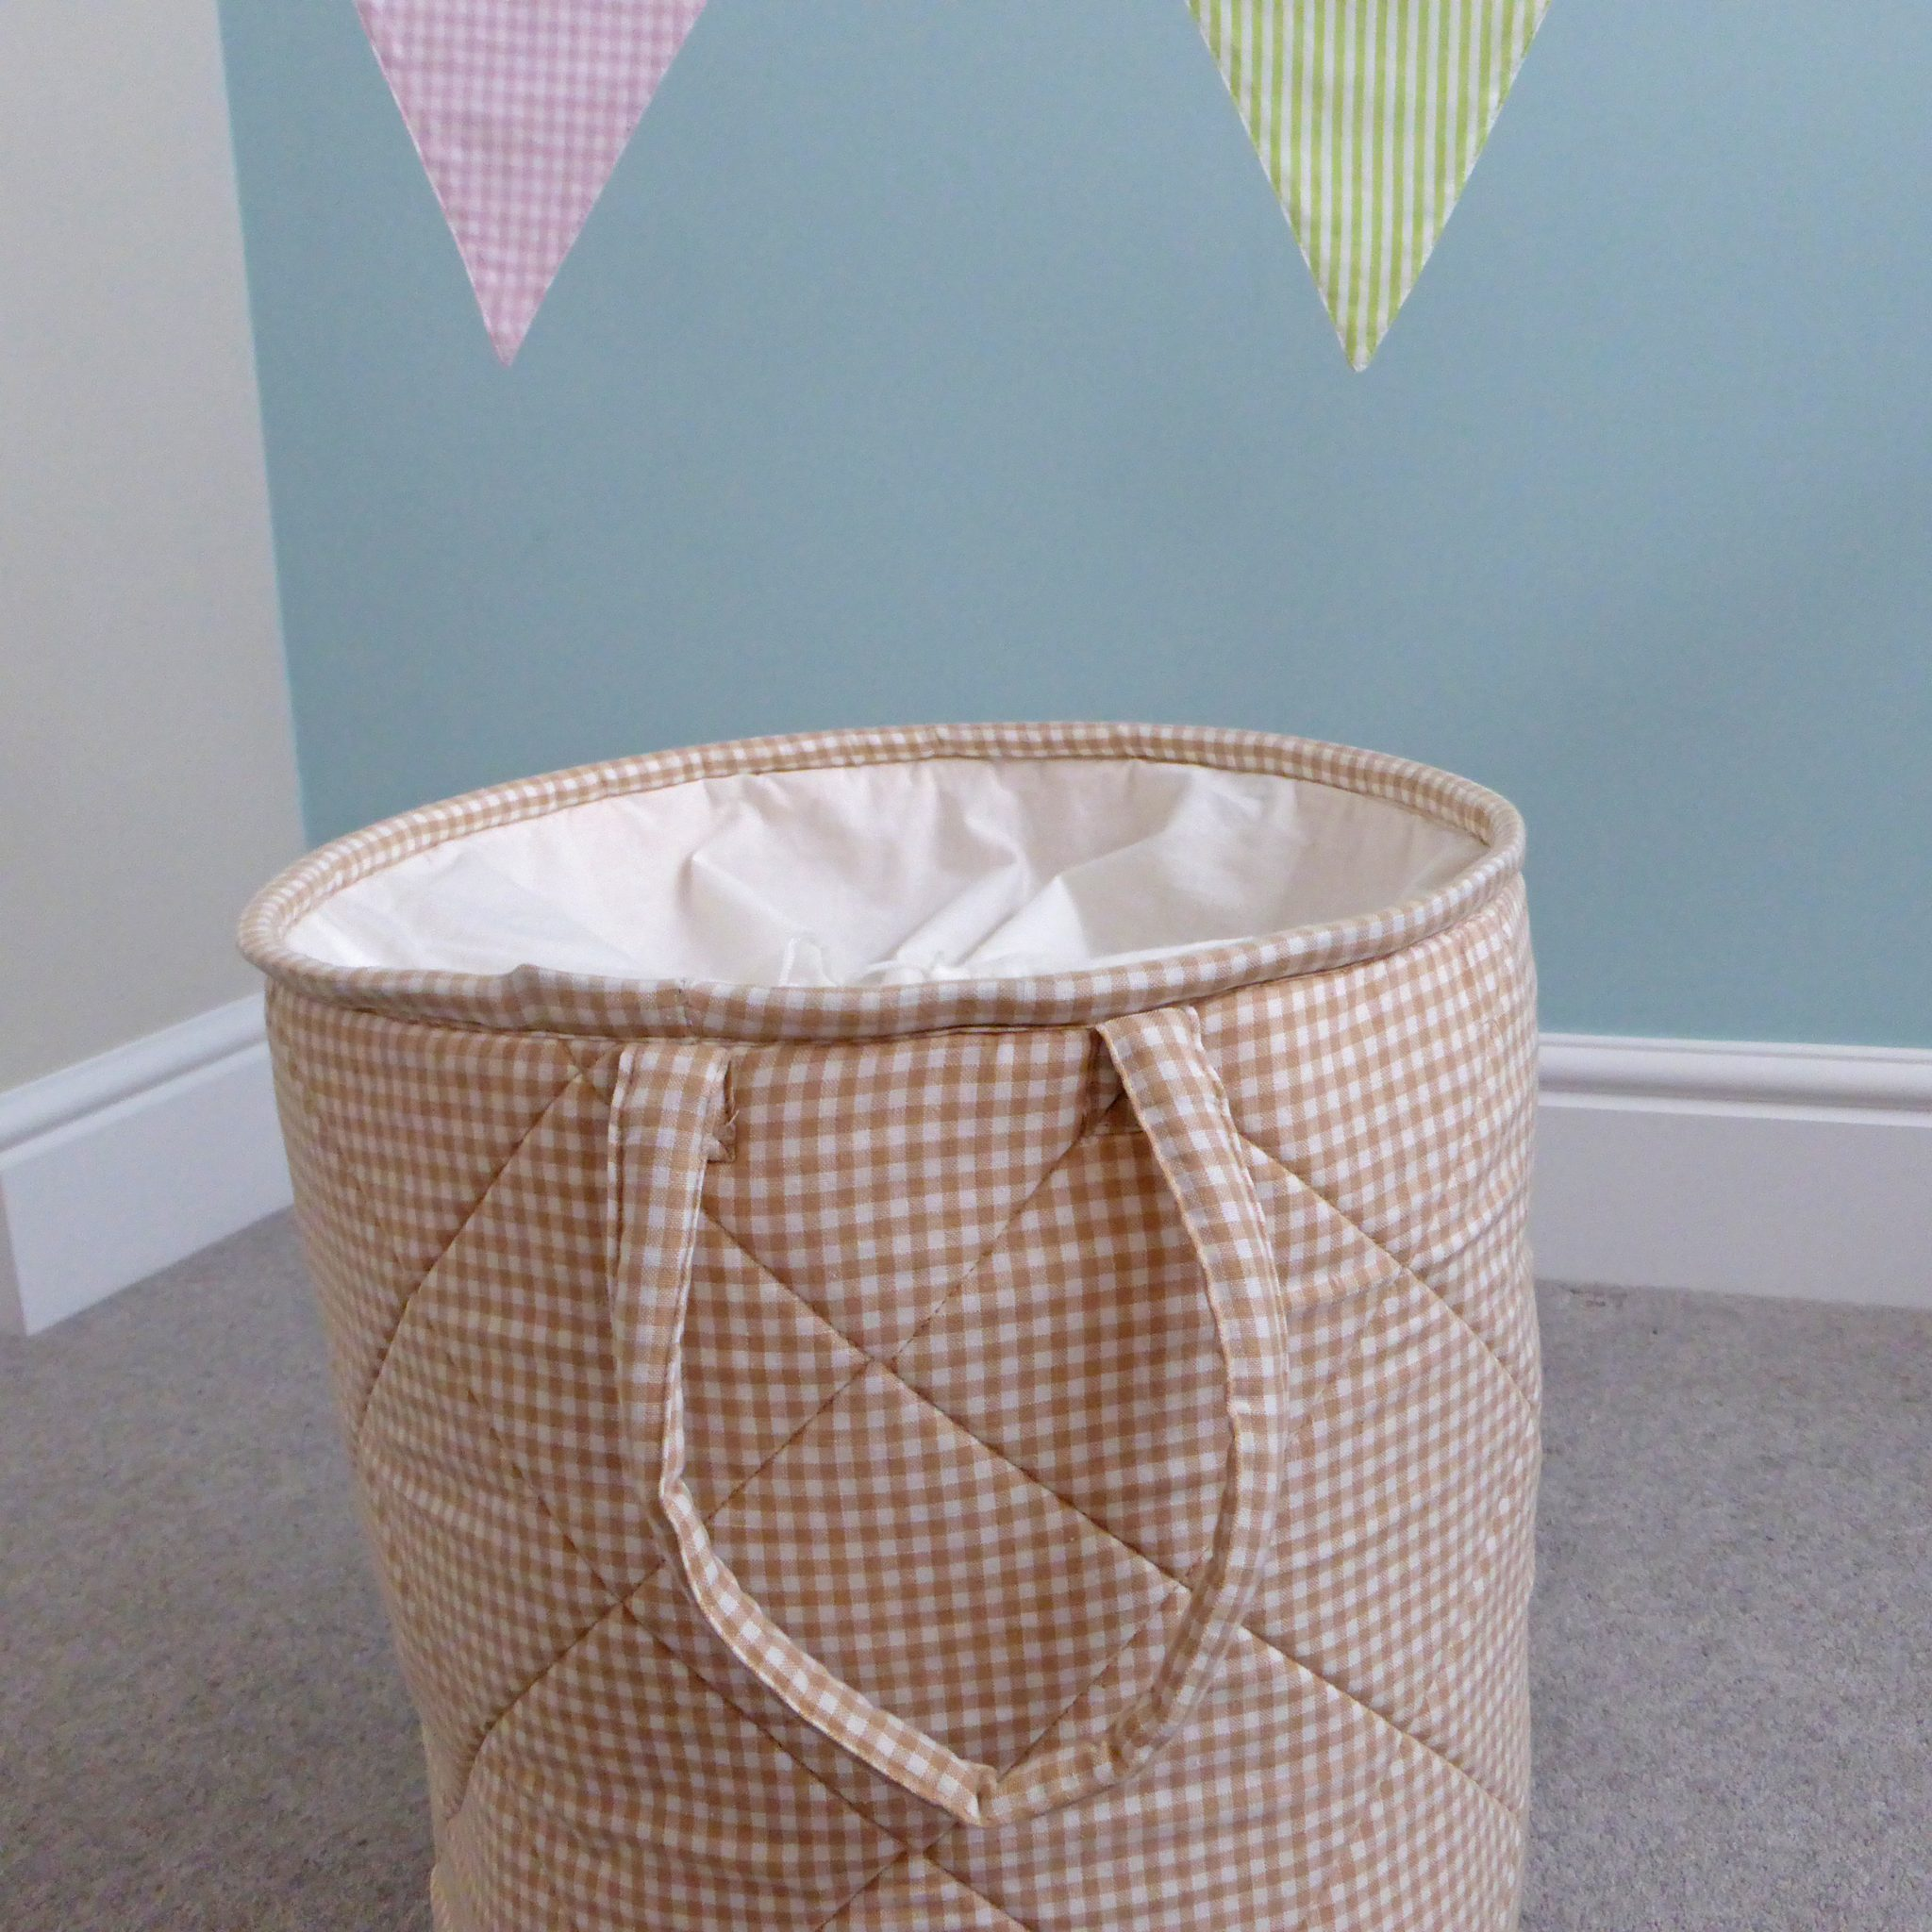 Closed Laundry Basket 3rd Image Close Up Handle Kiddiewinkles Neutral Gingham